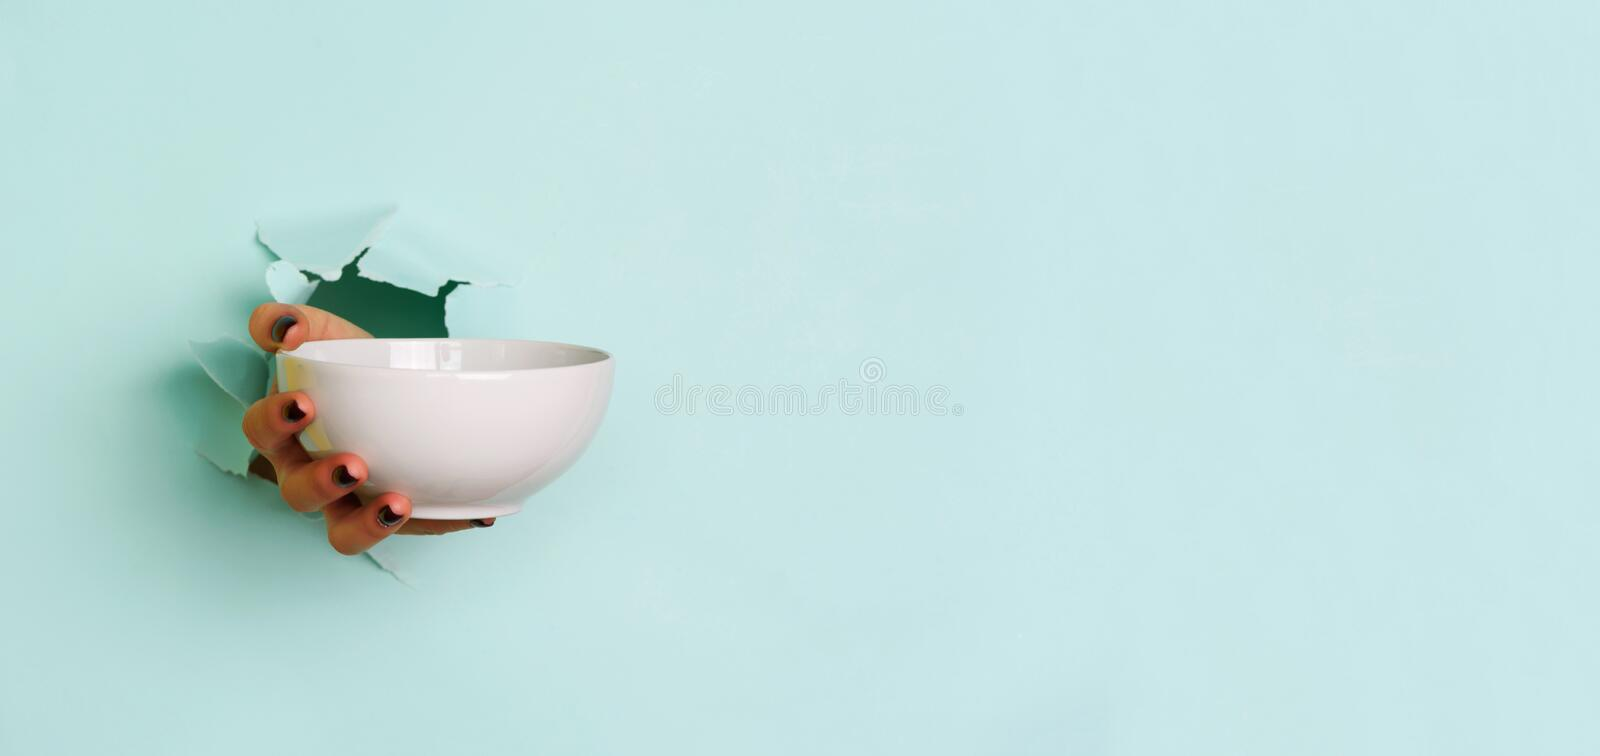 Female hand holding empty bowl on blue background with copy space. Healthy eating, dieting concept. Banner royalty free stock images